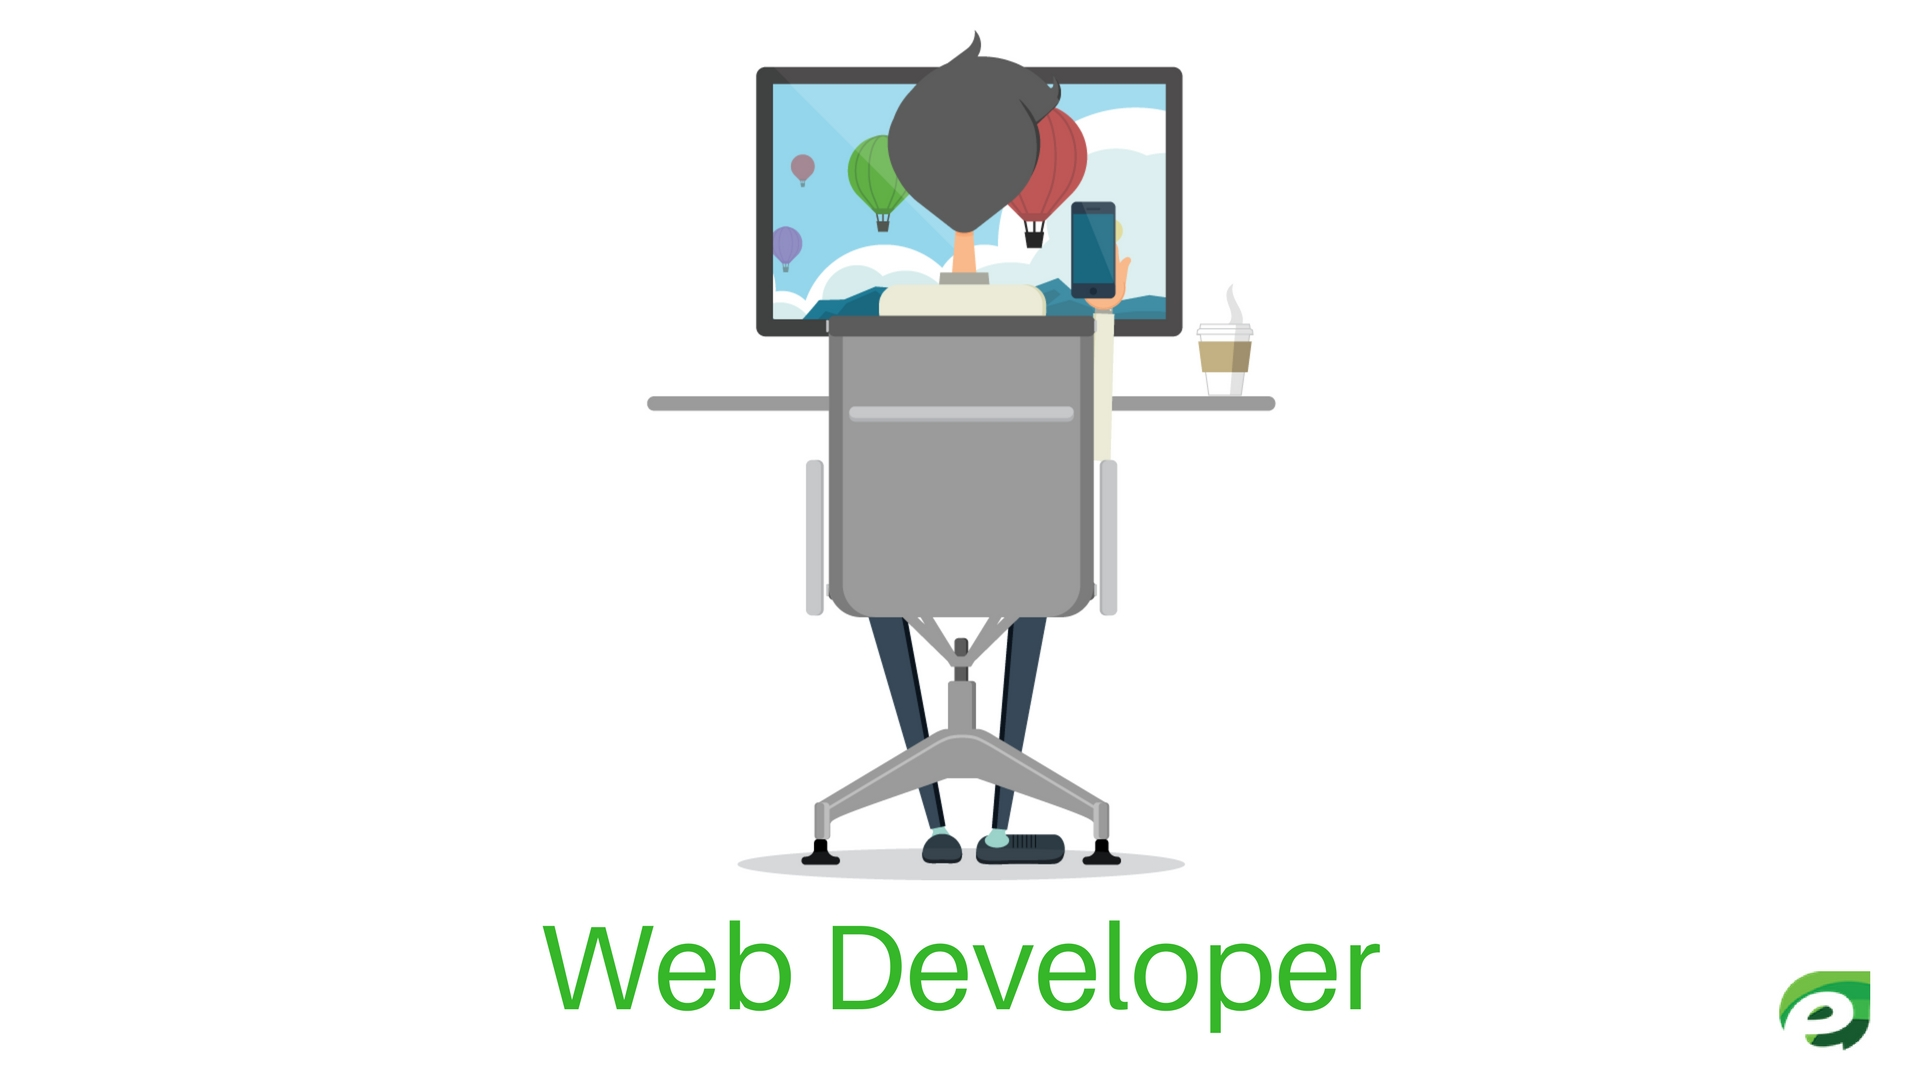 Web developer - SEO Team